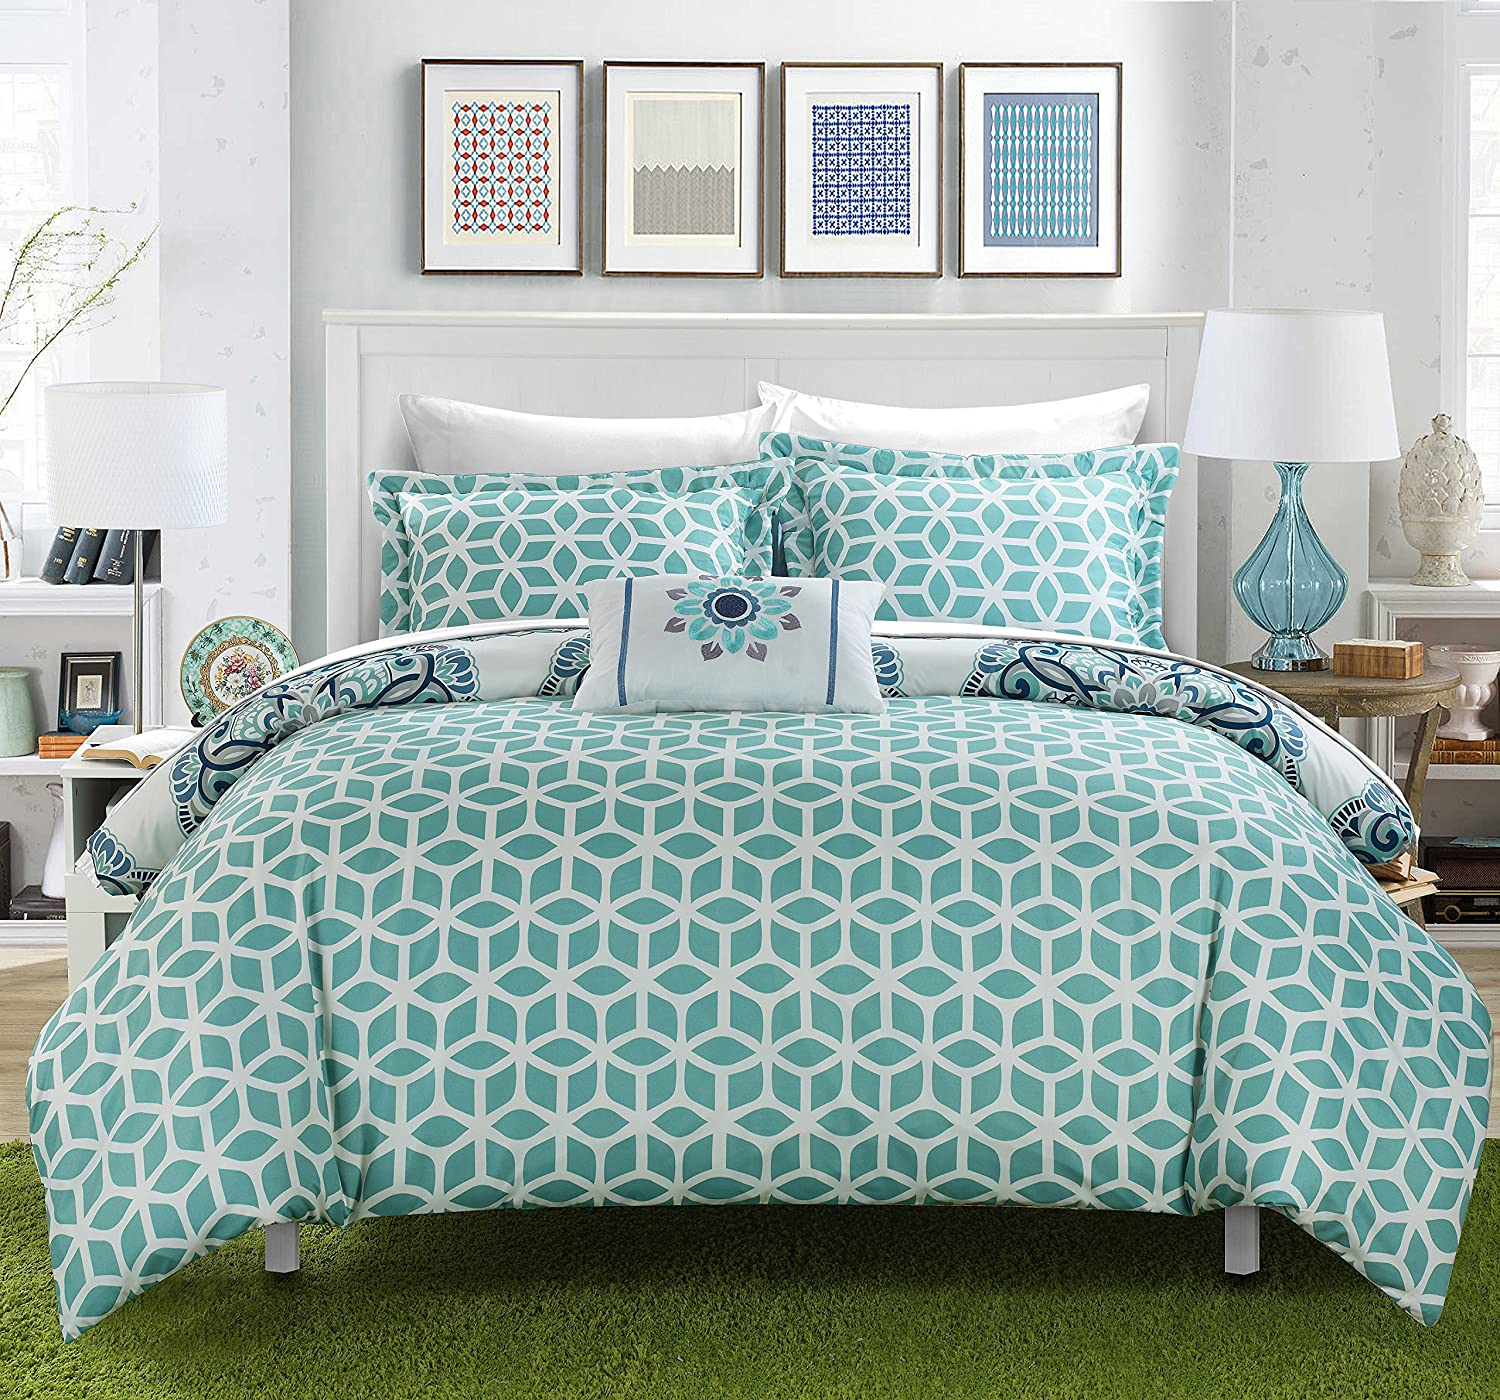 Amazon.com: Chic Home Barcelona 8 Piece Reversible Comforter Set Super Soft  Microfiber Large Printed Medallion Design With Geometric Patterned Backing  Bed ...